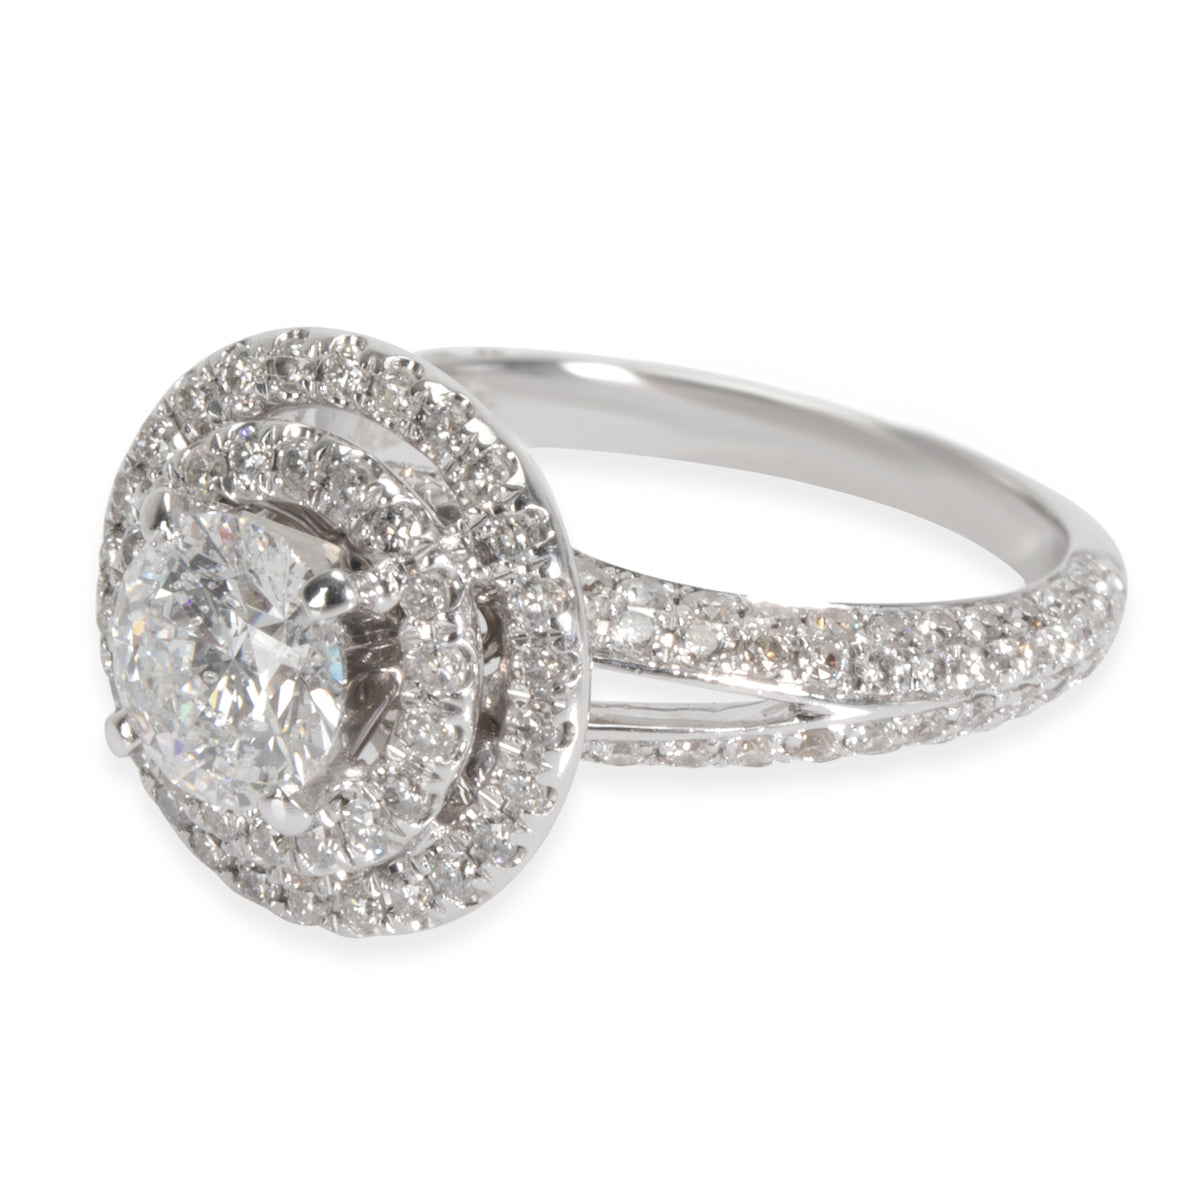 Neil Lane Double Halo Diamond Engagement Ring in 14K White Gold 2.00 CTW